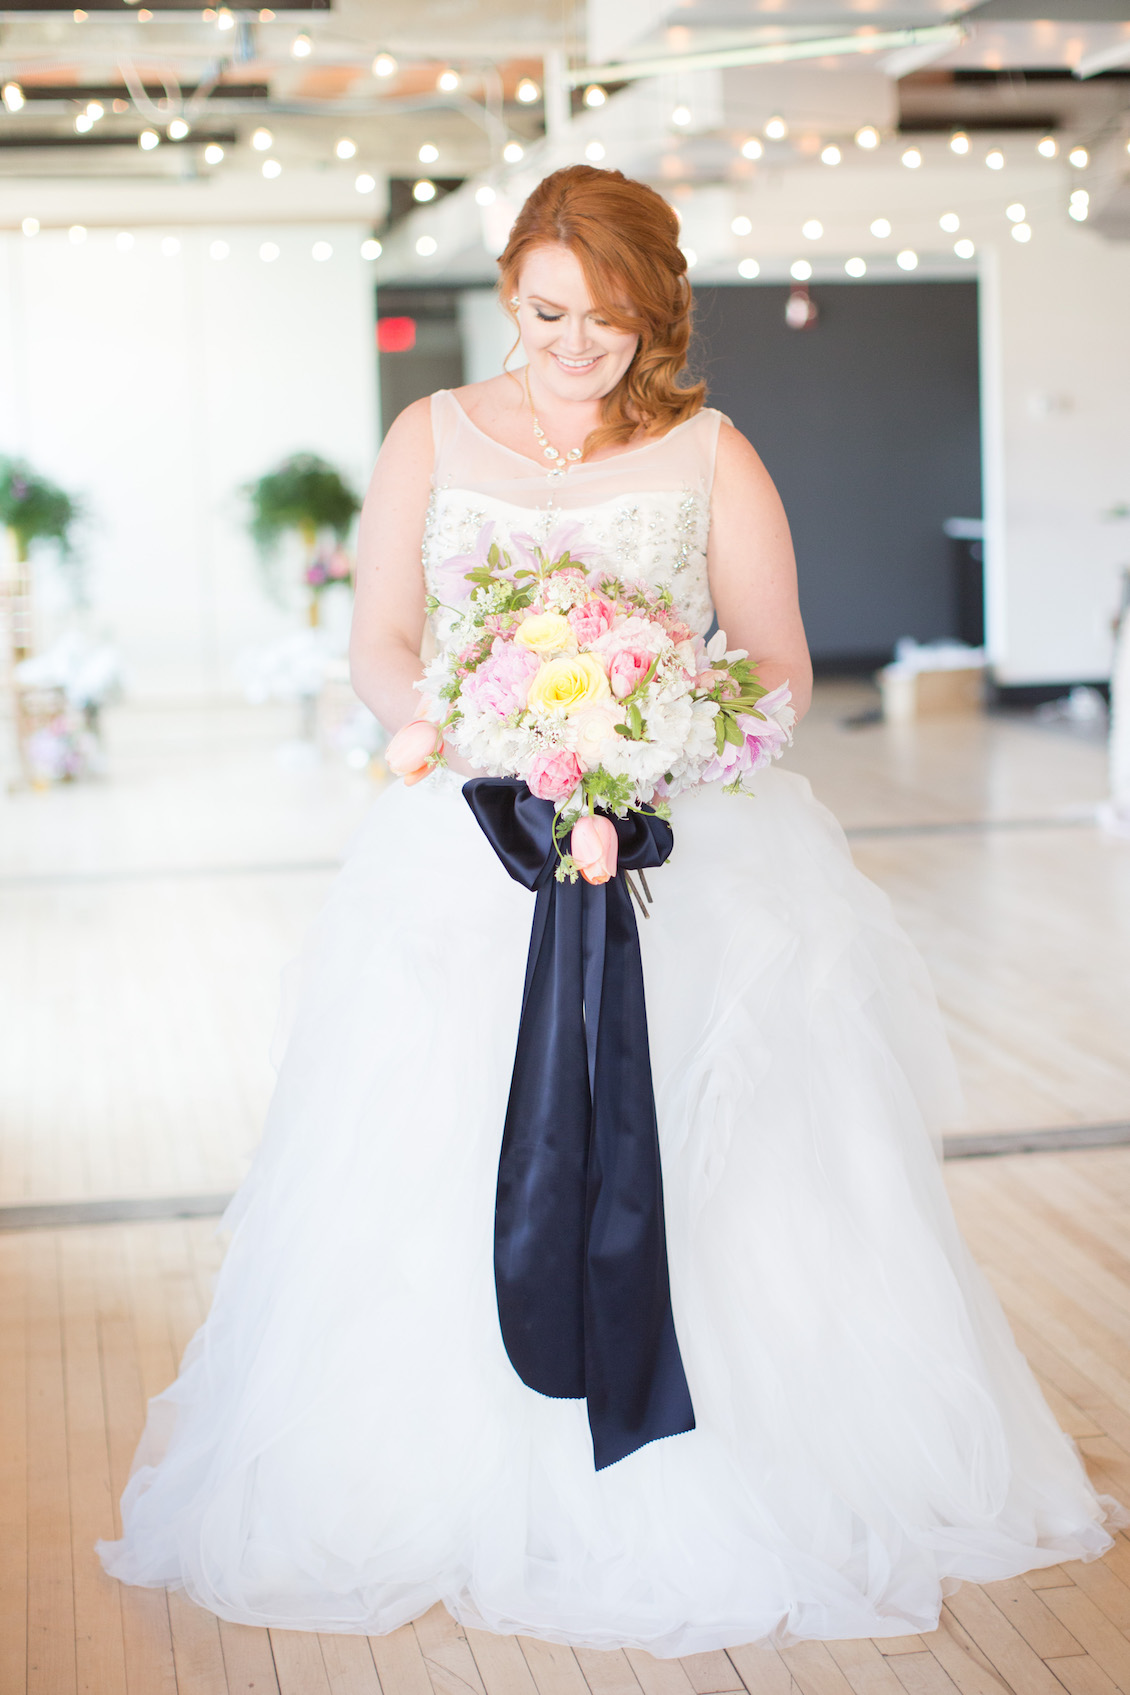 Spectacular Bridal Bouquet with Pops of Color and Long Cascading French Ribbon / Florals by EightTreeStreet / Photography by Amy Nicole